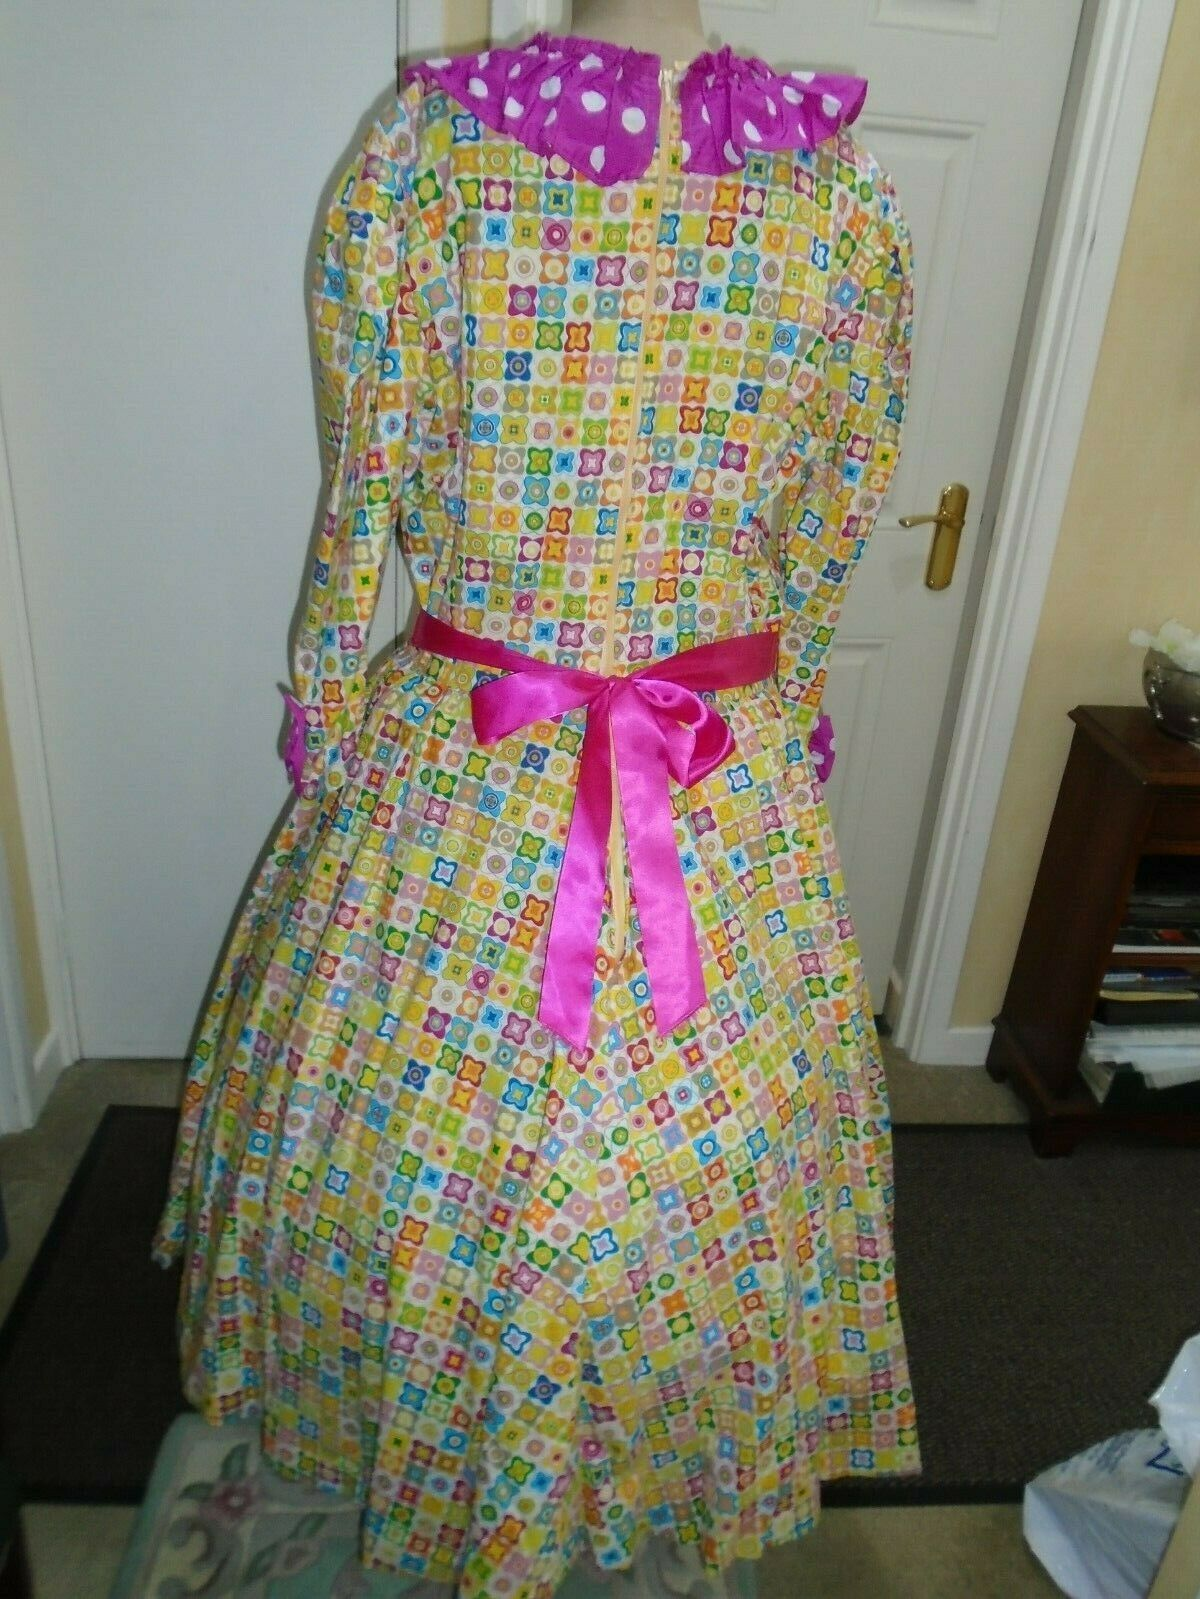 Dames Dress worker 52 inch bust pantomime large size tall man